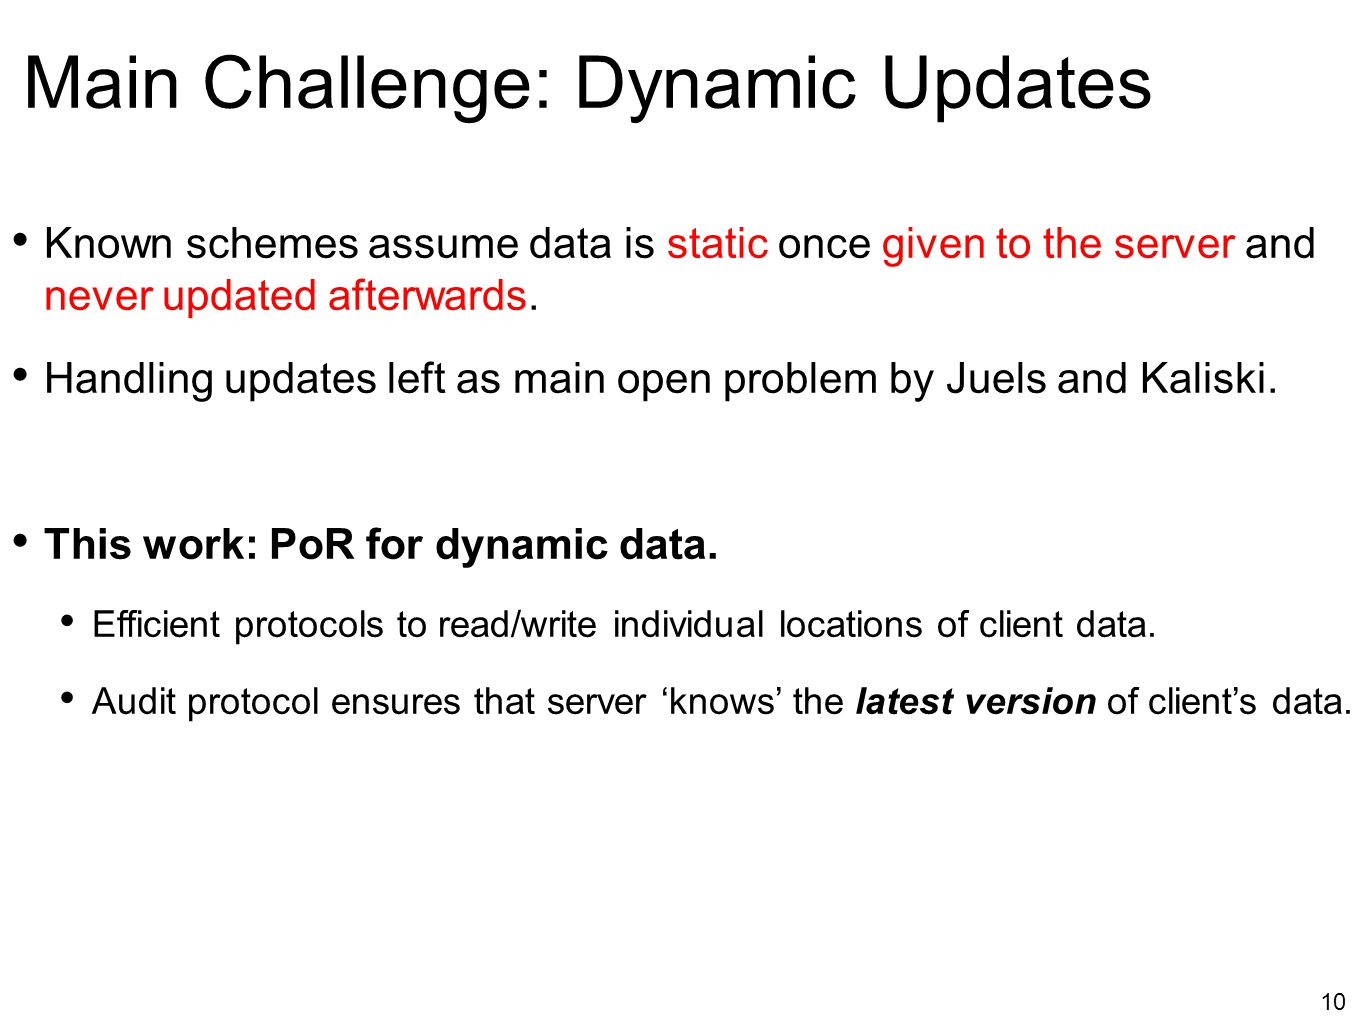 10 Main Challenge: Dynamic Updates Known schemes assume data is static once given to the server and never updated afterwards. Handling updates left as